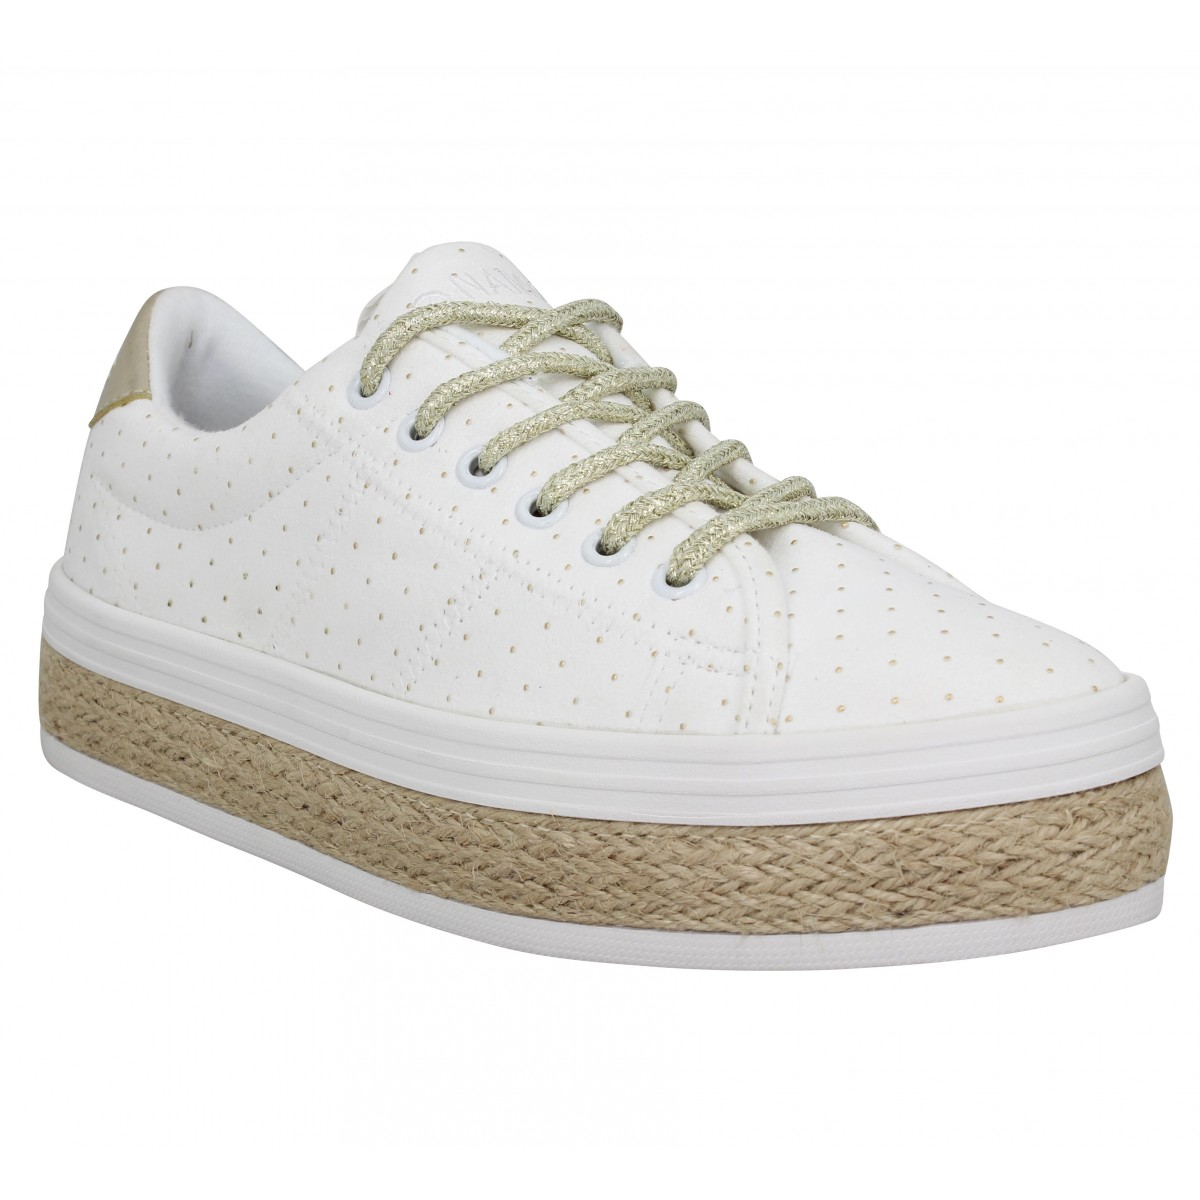 Baskets NO NAME Malibu Sneaker toile Femme Blanc